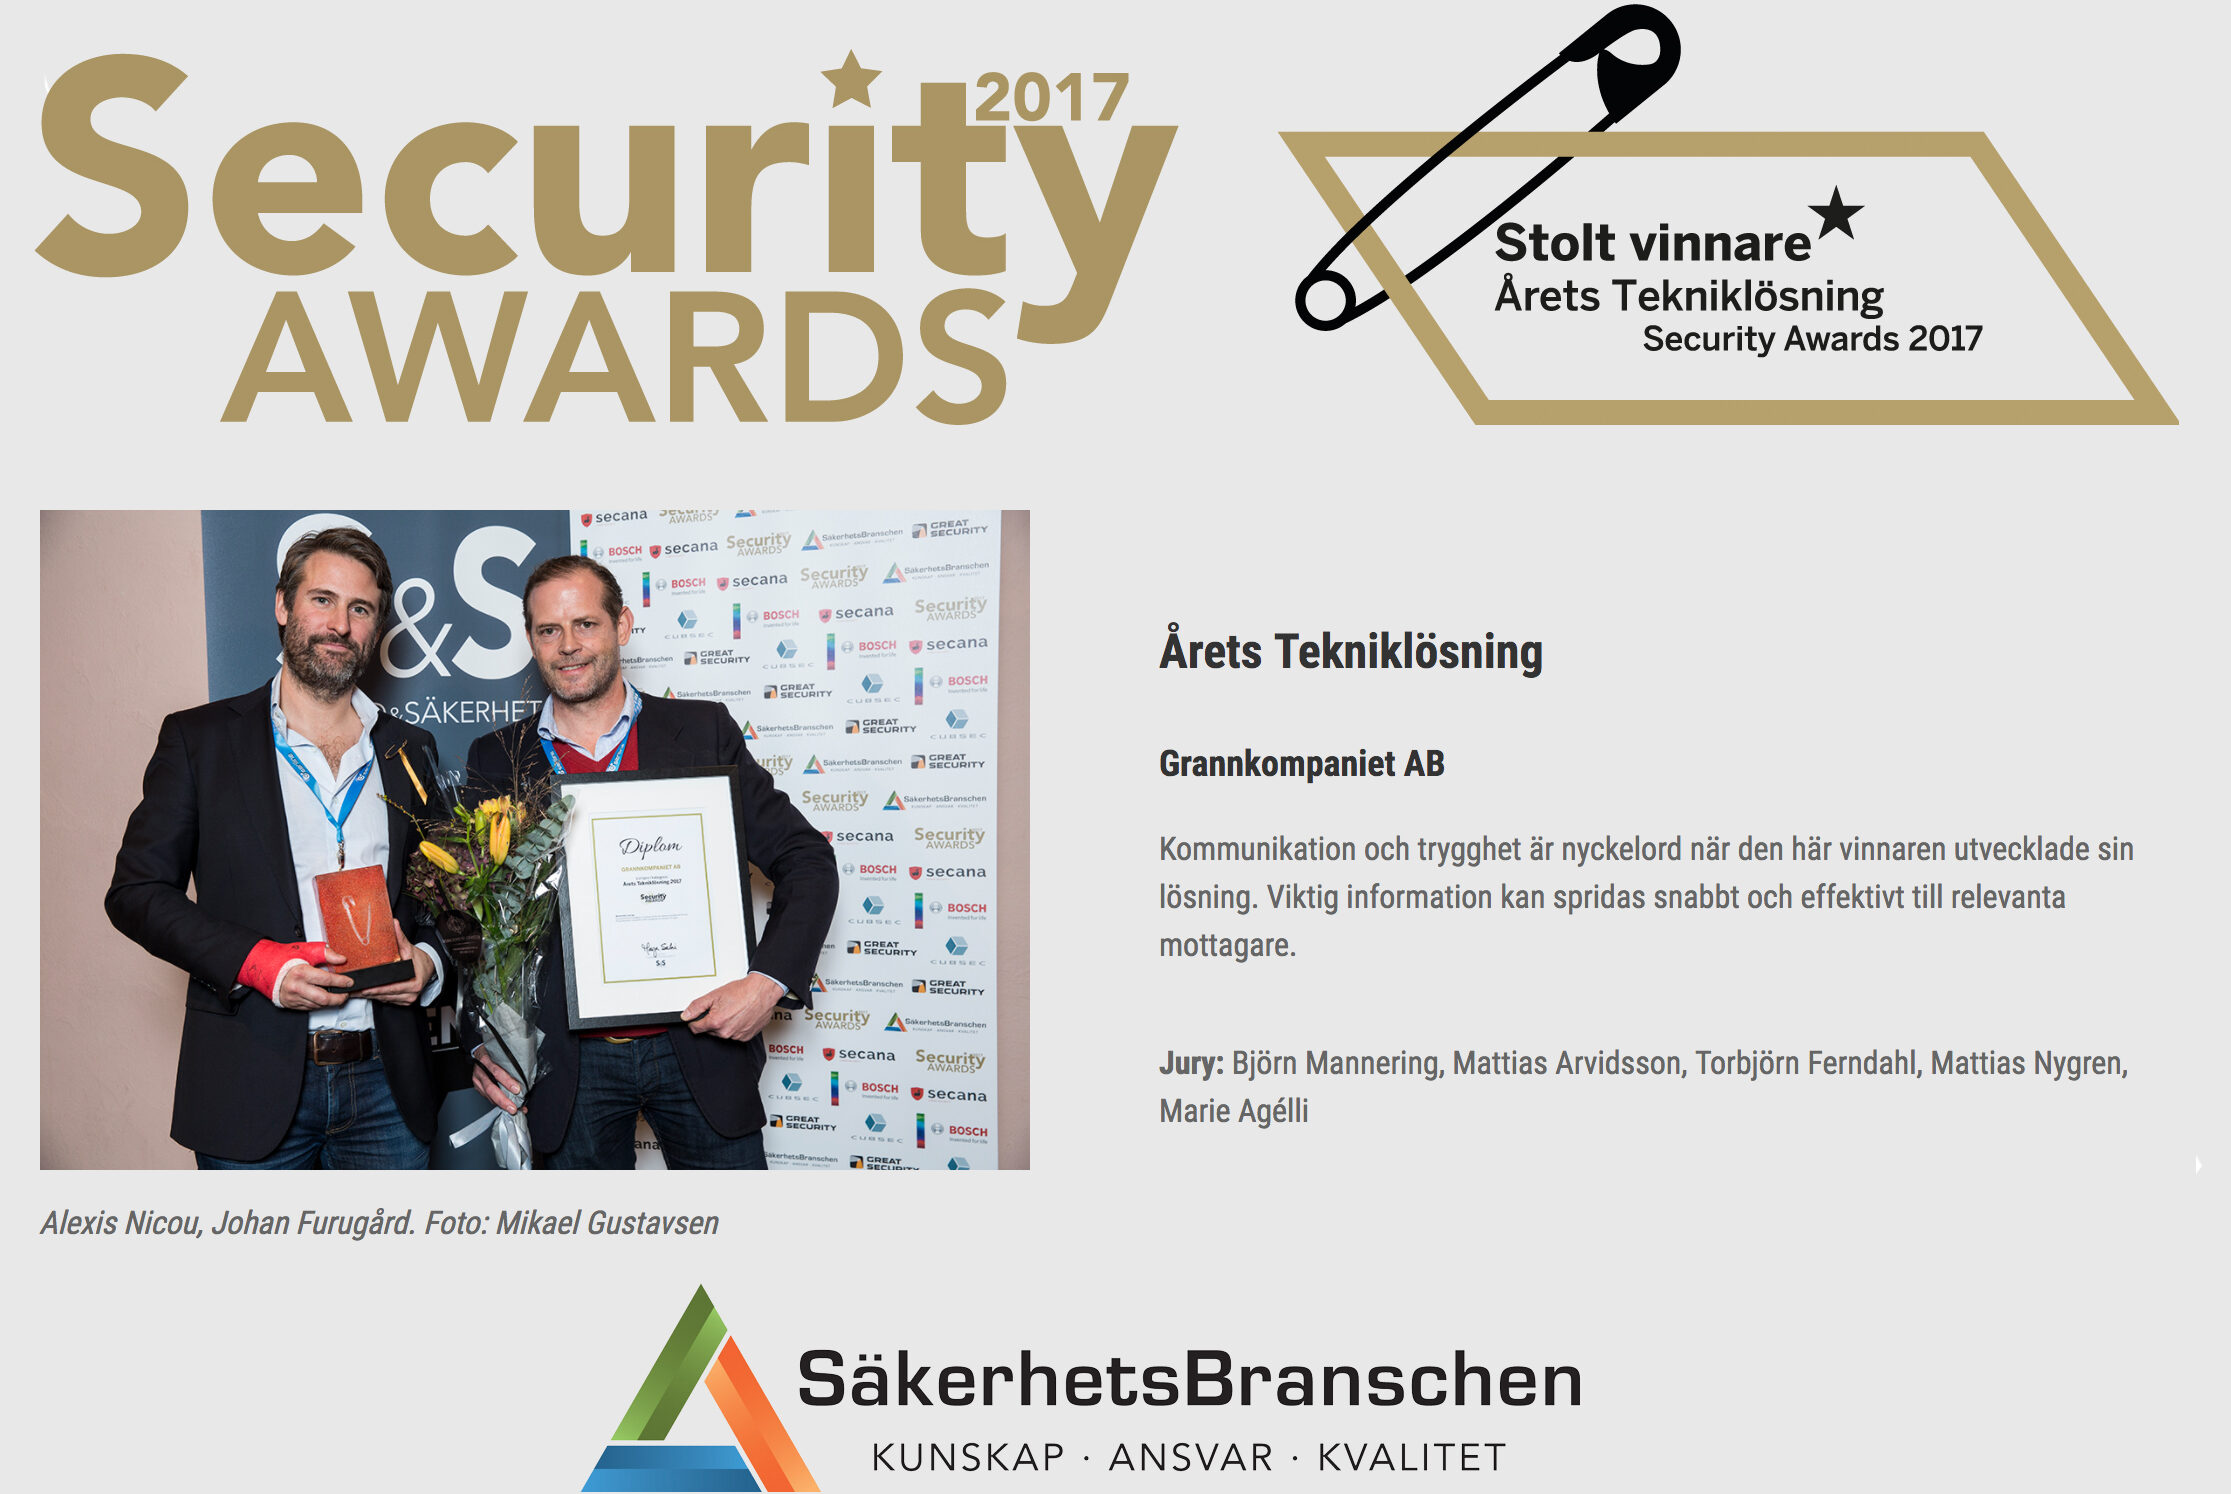 security_awards_årets_tekniklösning_cocrisis